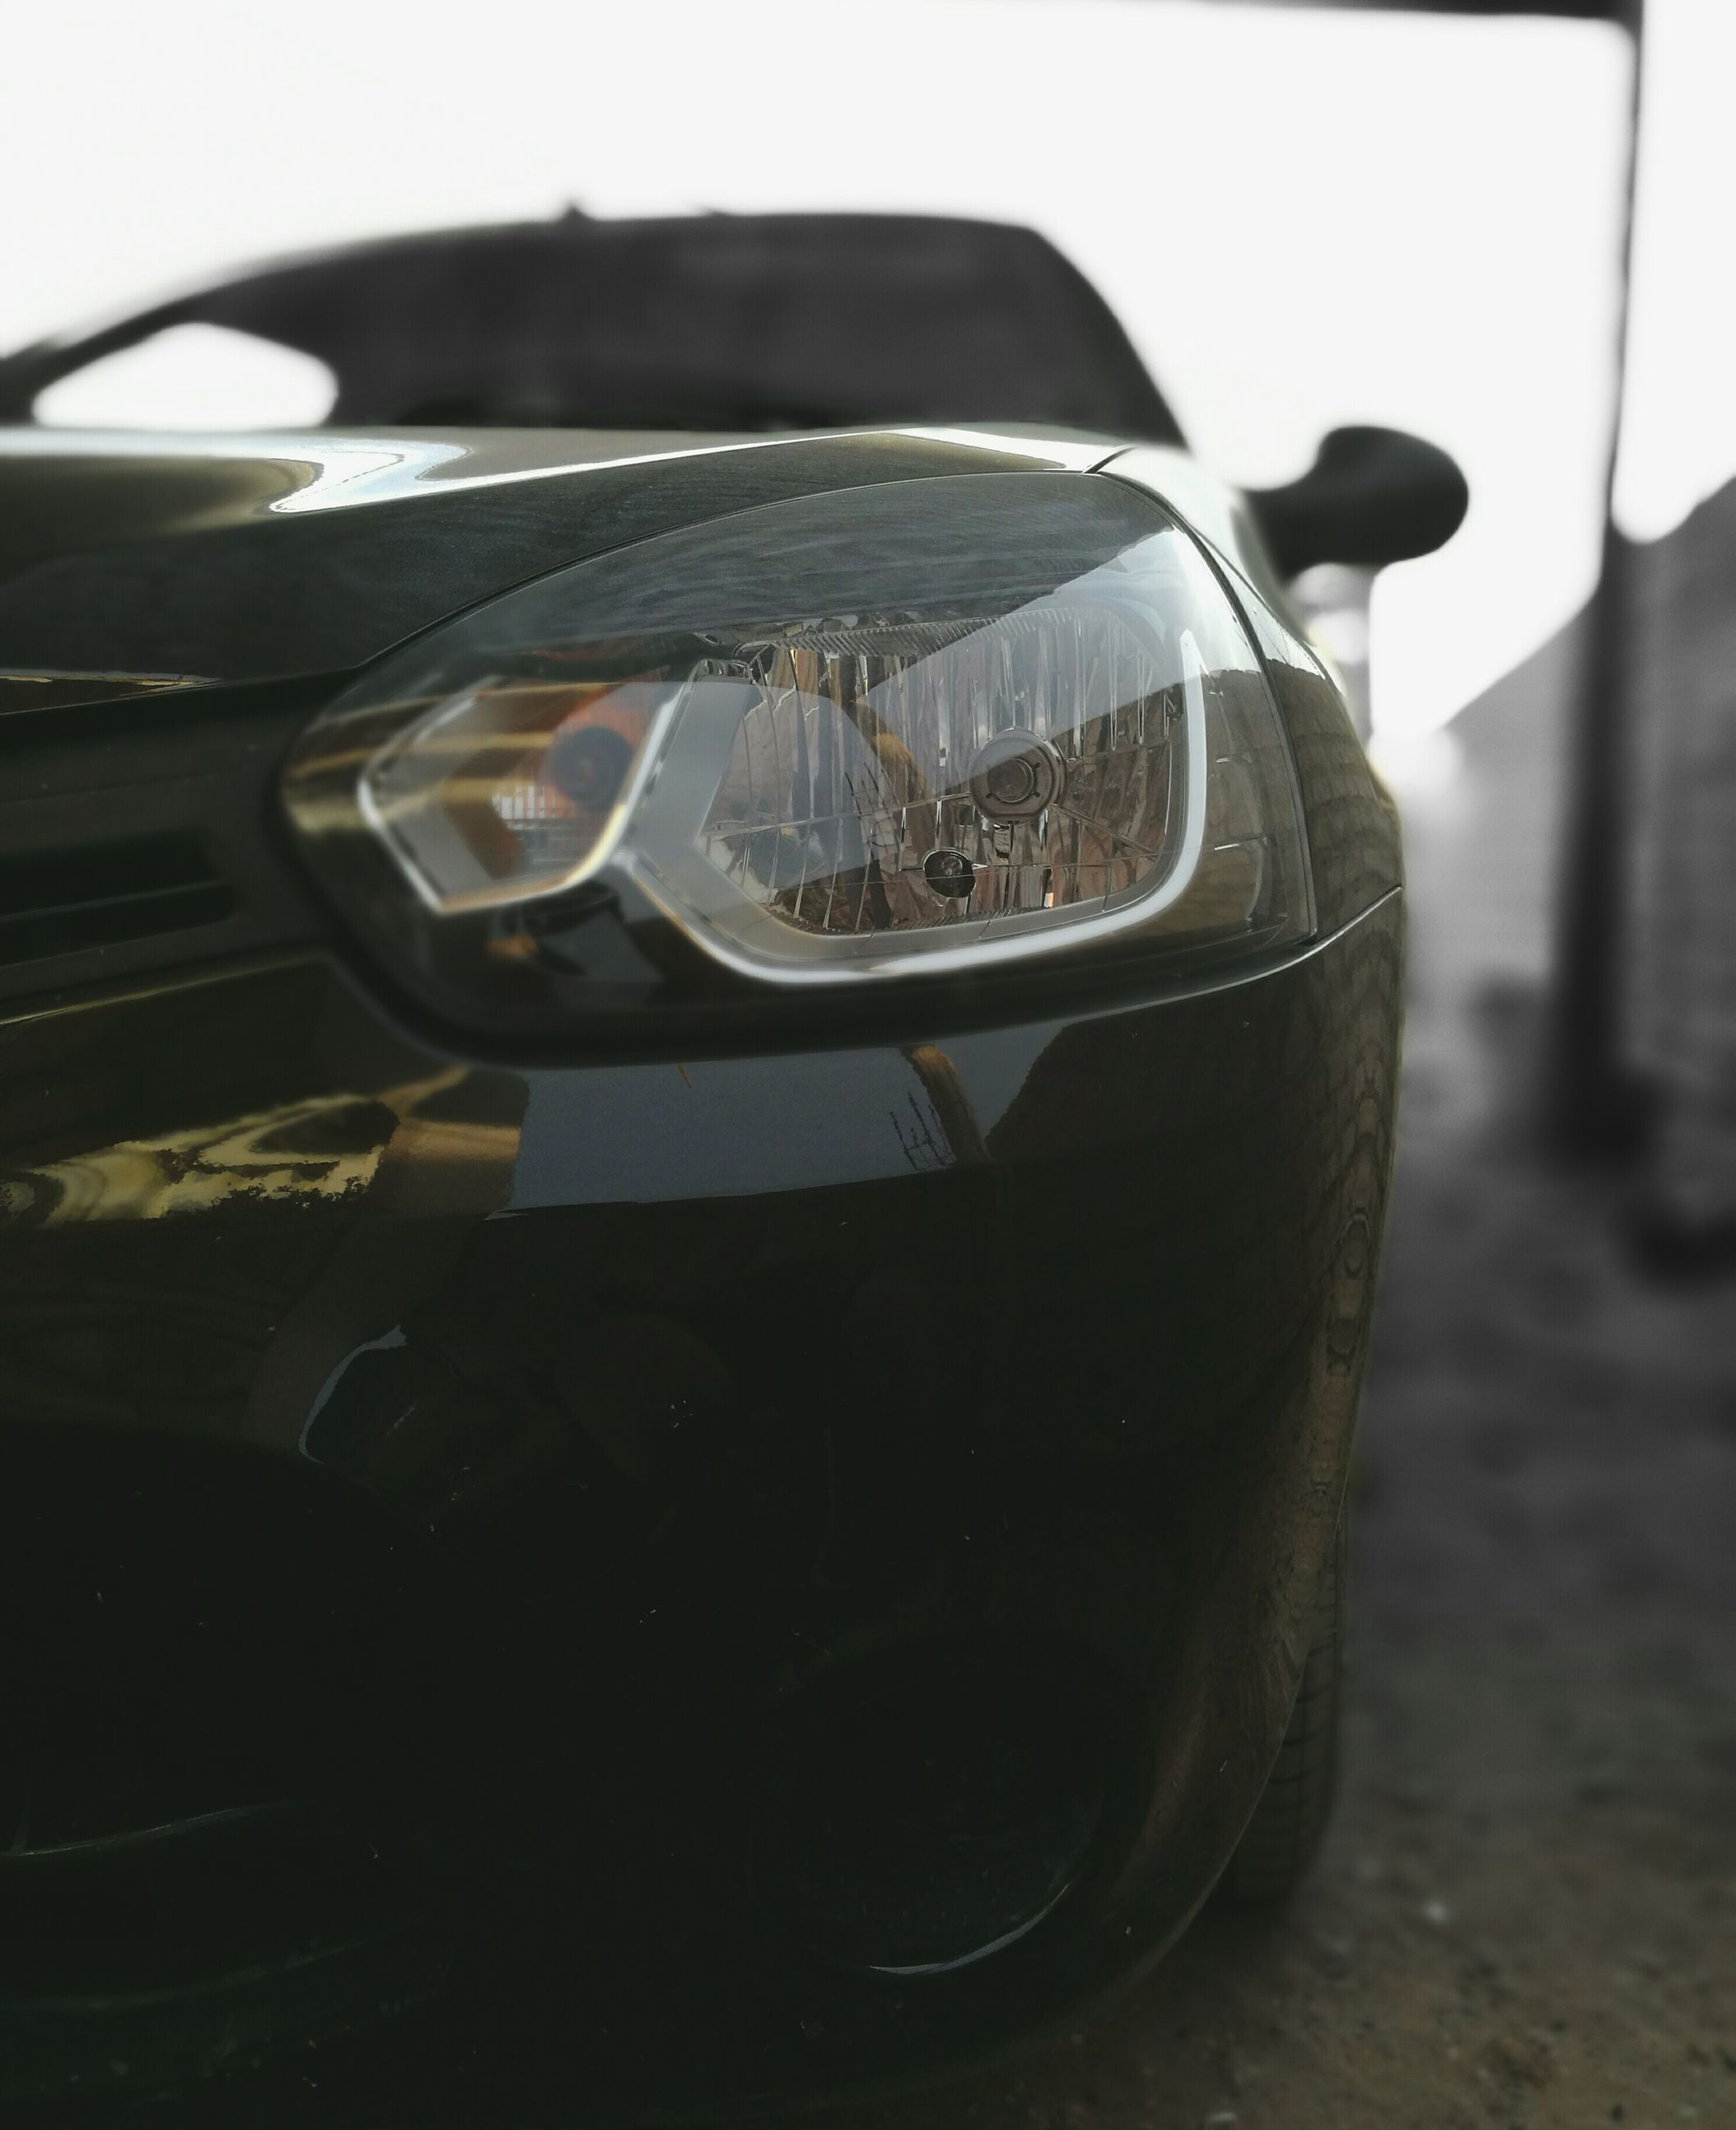 car, land vehicle, mode of transport, close-up, day, no people, outdoors, gas